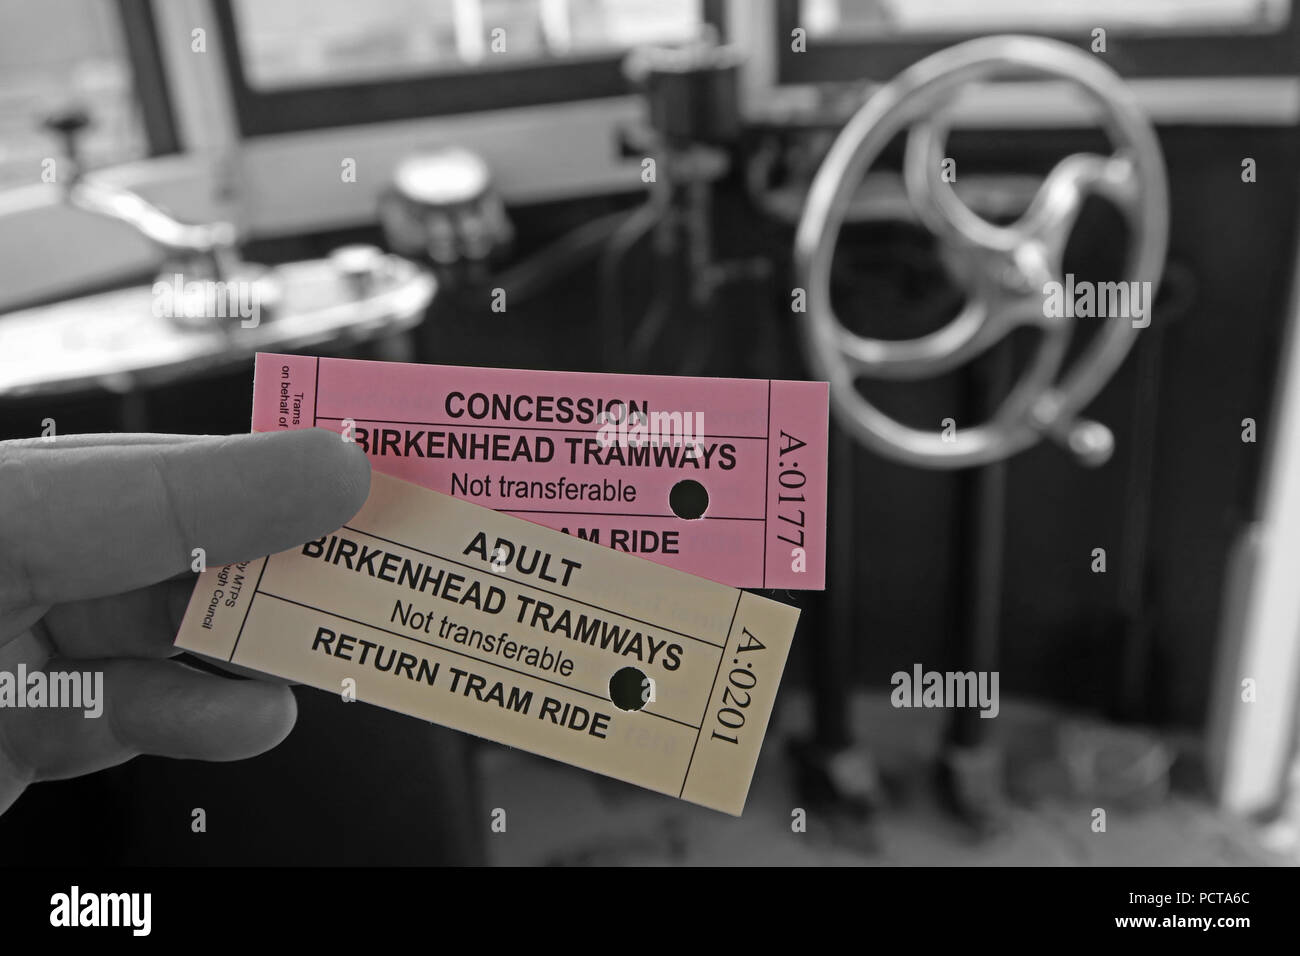 Tram tickets, being punched, Birkenhead Tramways, Merseyside, North West England, UK - Selective Colour - Stock Image